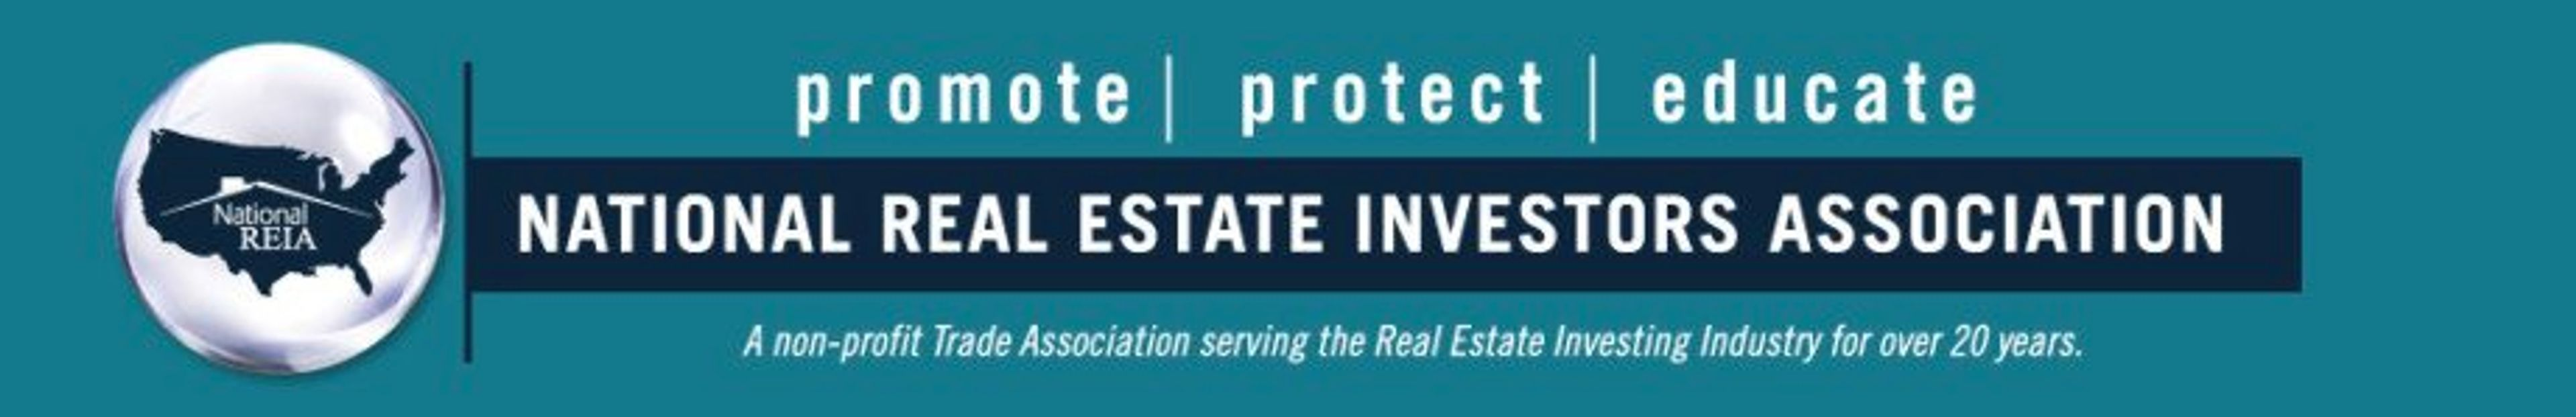 Real Estate Investor Education and More